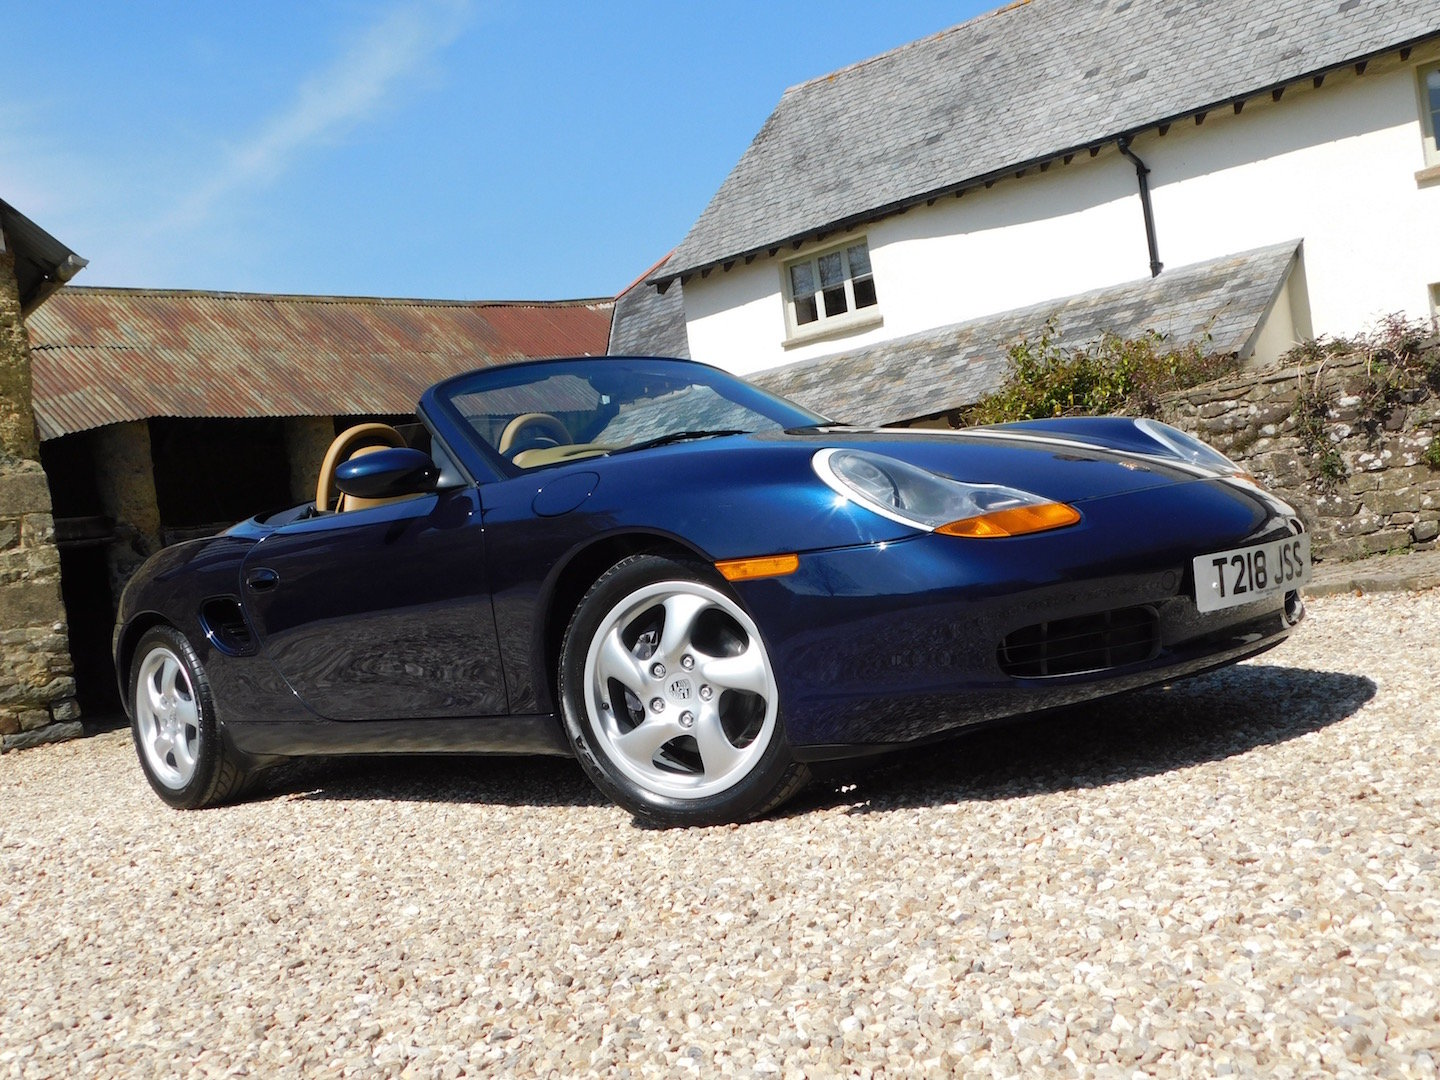 1999 Porsche Boxster 2.5 manual - 16k miles, 2 owners, incredible SOLD (picture 1 of 6)